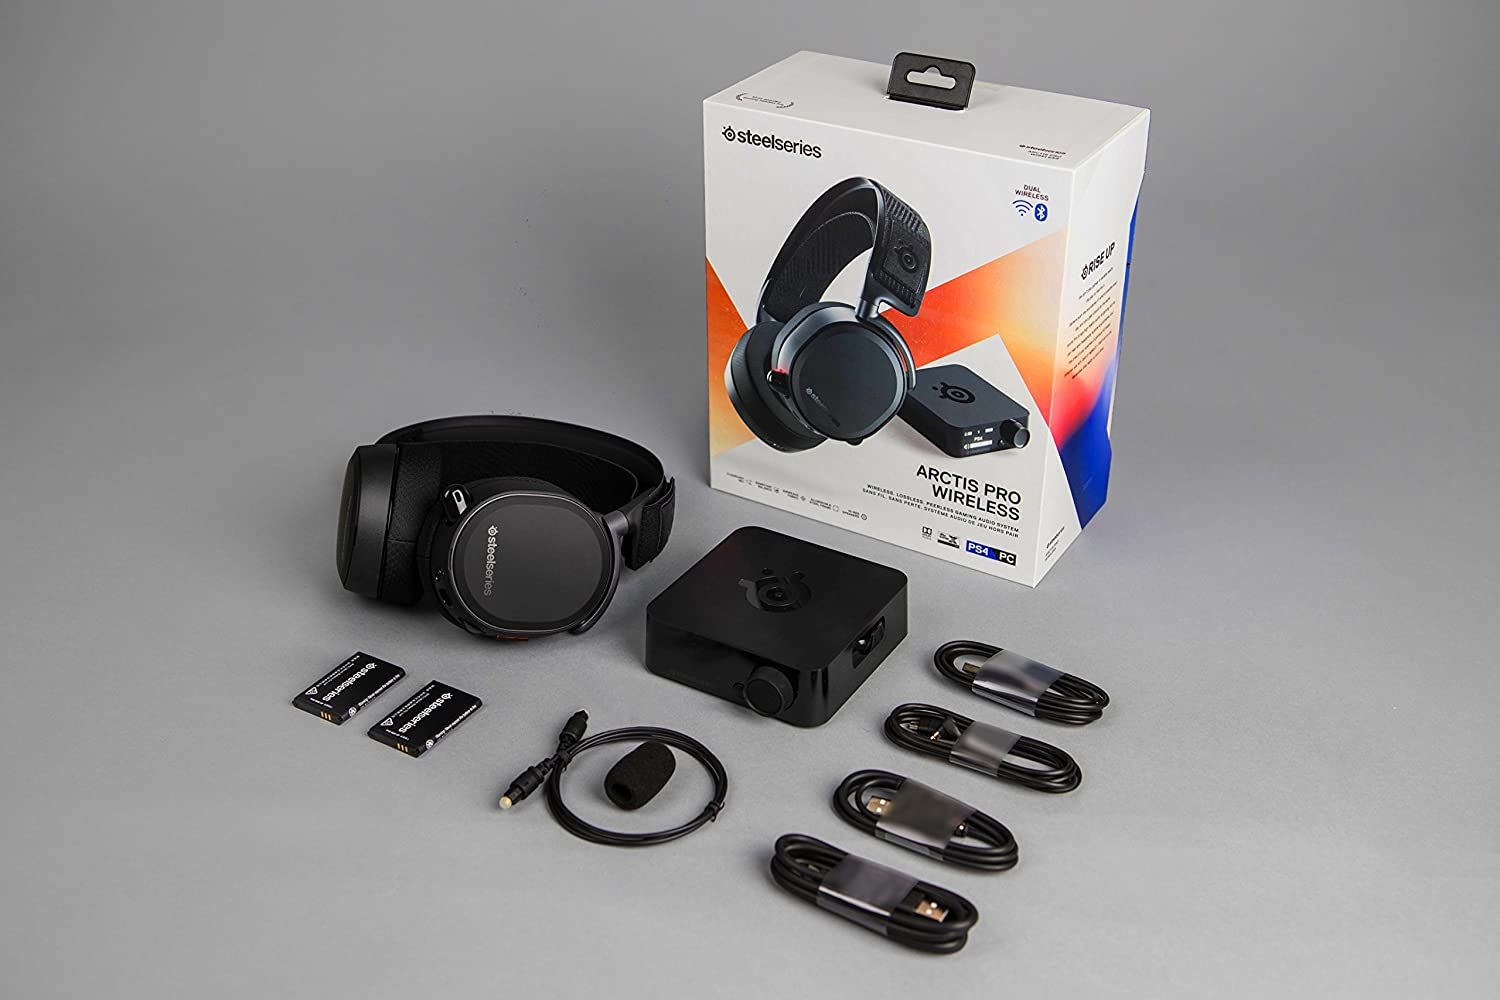 Steelseries Arctis Pro Wireless Gaming Headset Headphone Wiring Colors Free Engine Image For User Manual Lossless High Fidelity Bluetooth Ps4 And Pc Playstation 4 Video Games